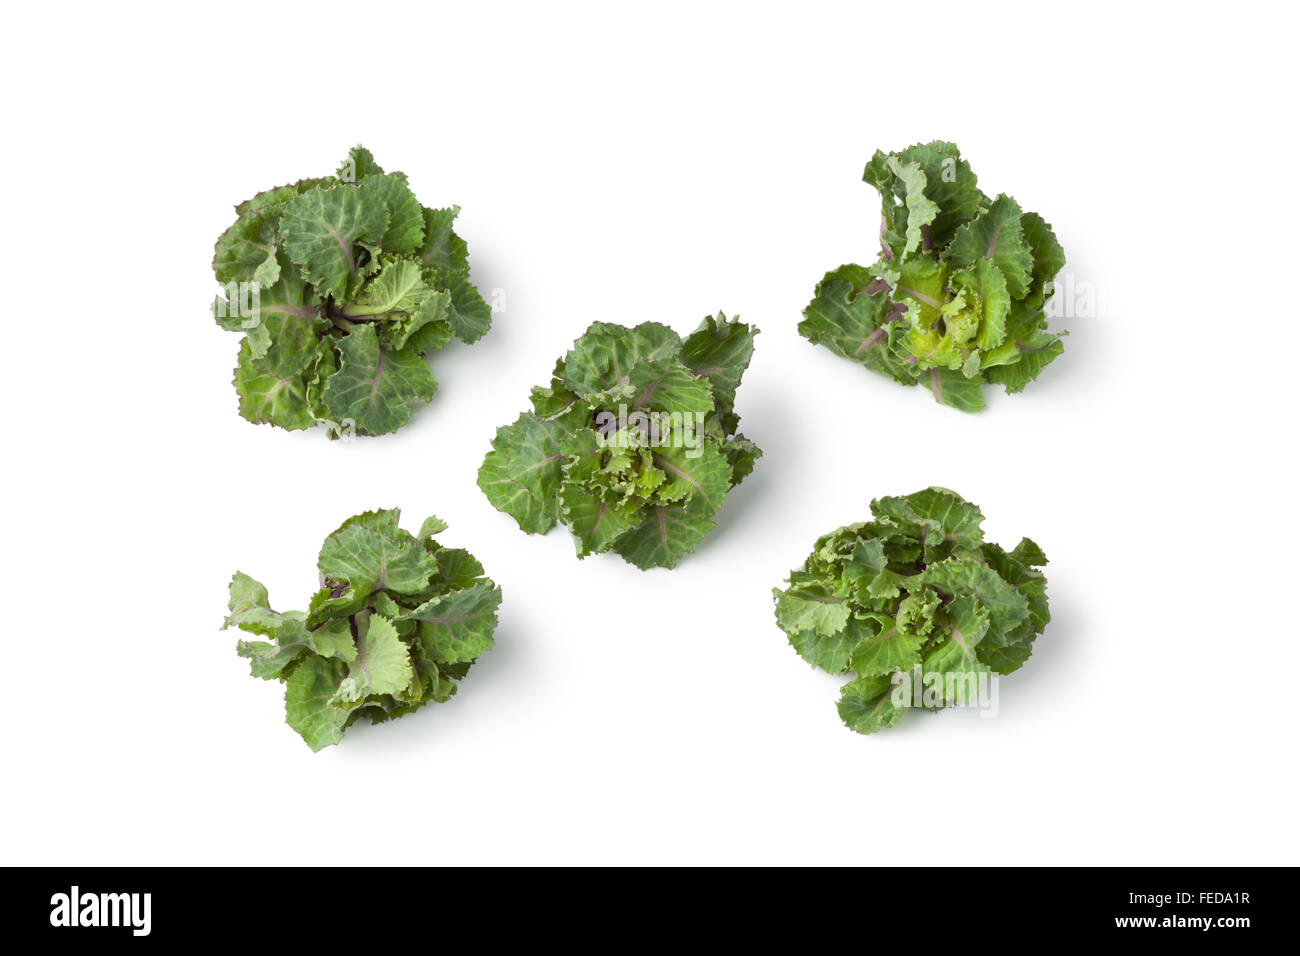 Fresh green flower sprouts on white background - Stock Image